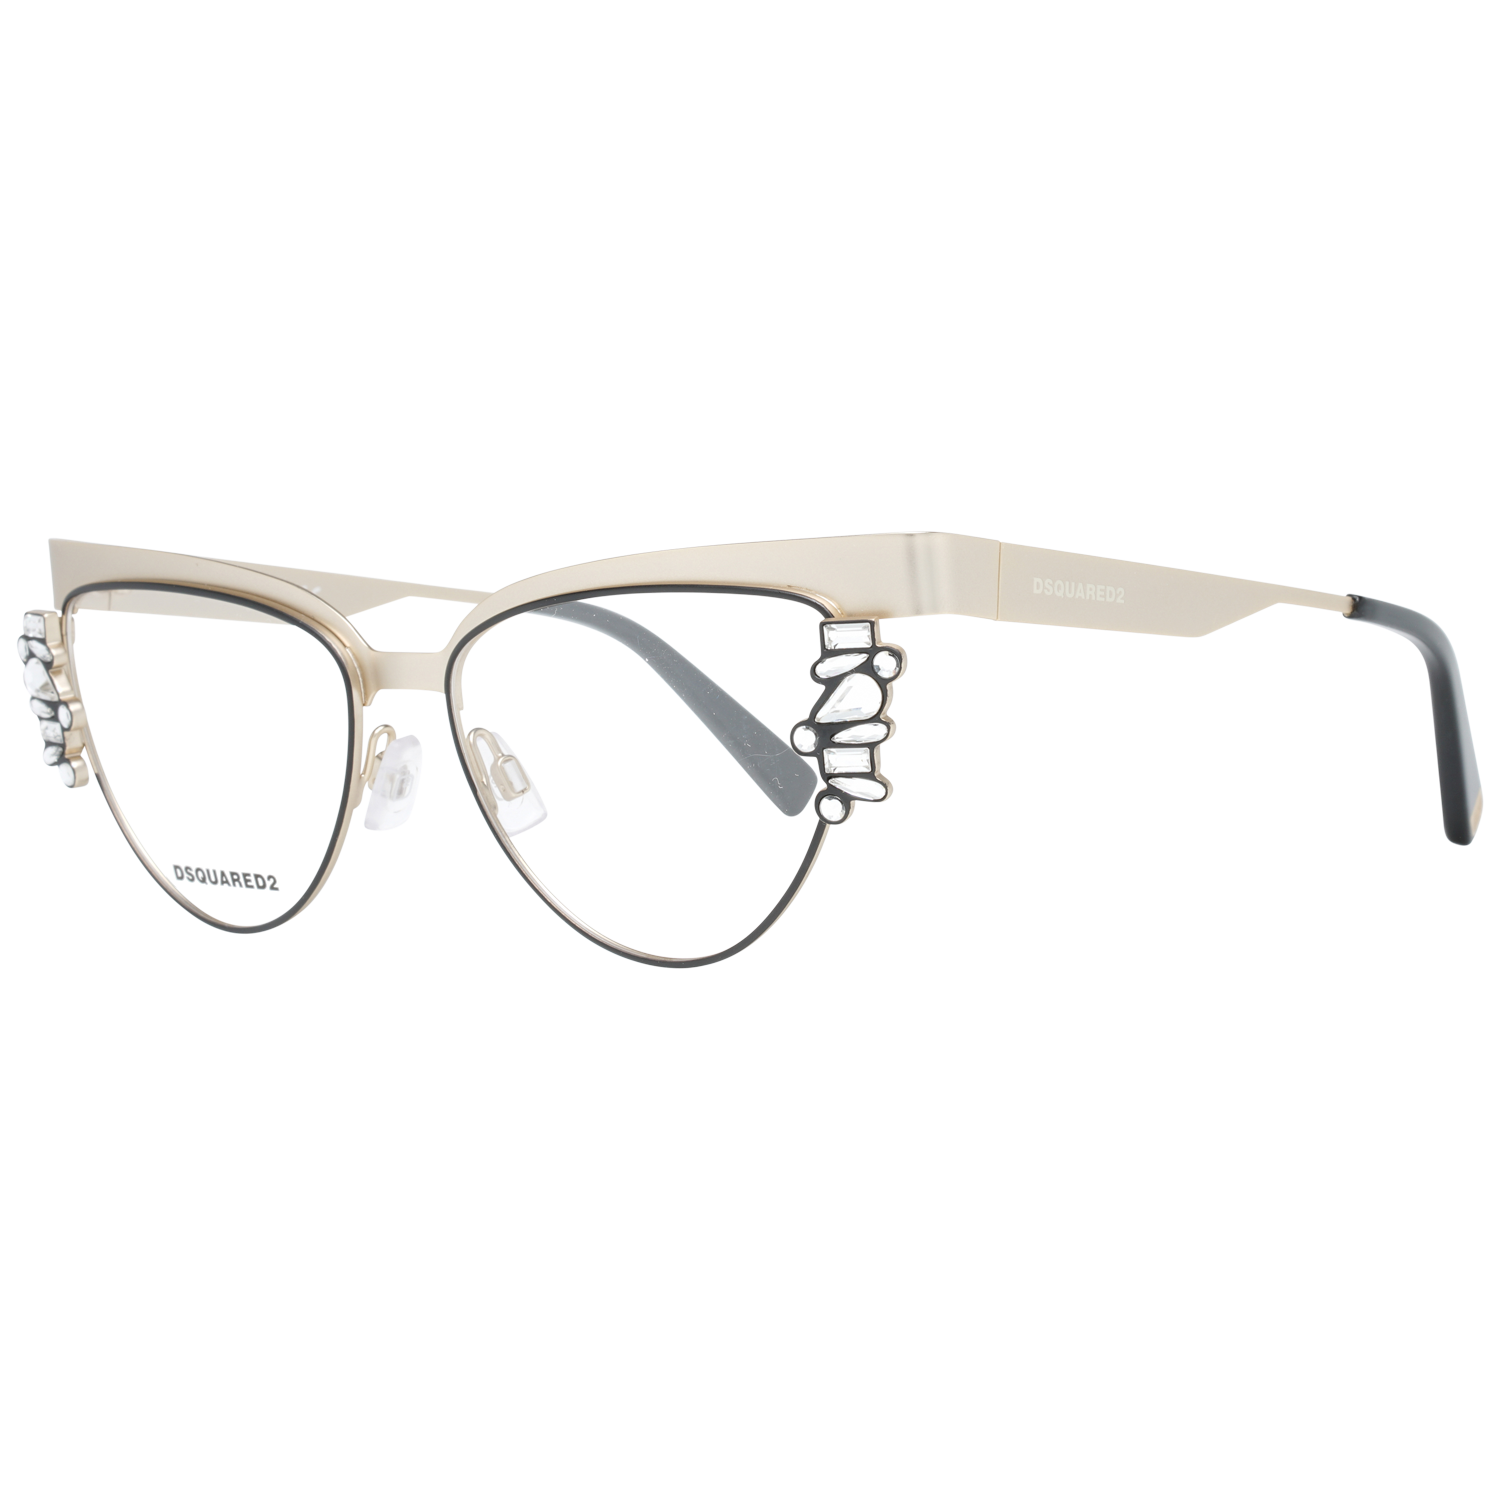 Dsquared2 Optical Frame DQ5276 032 52 Gold